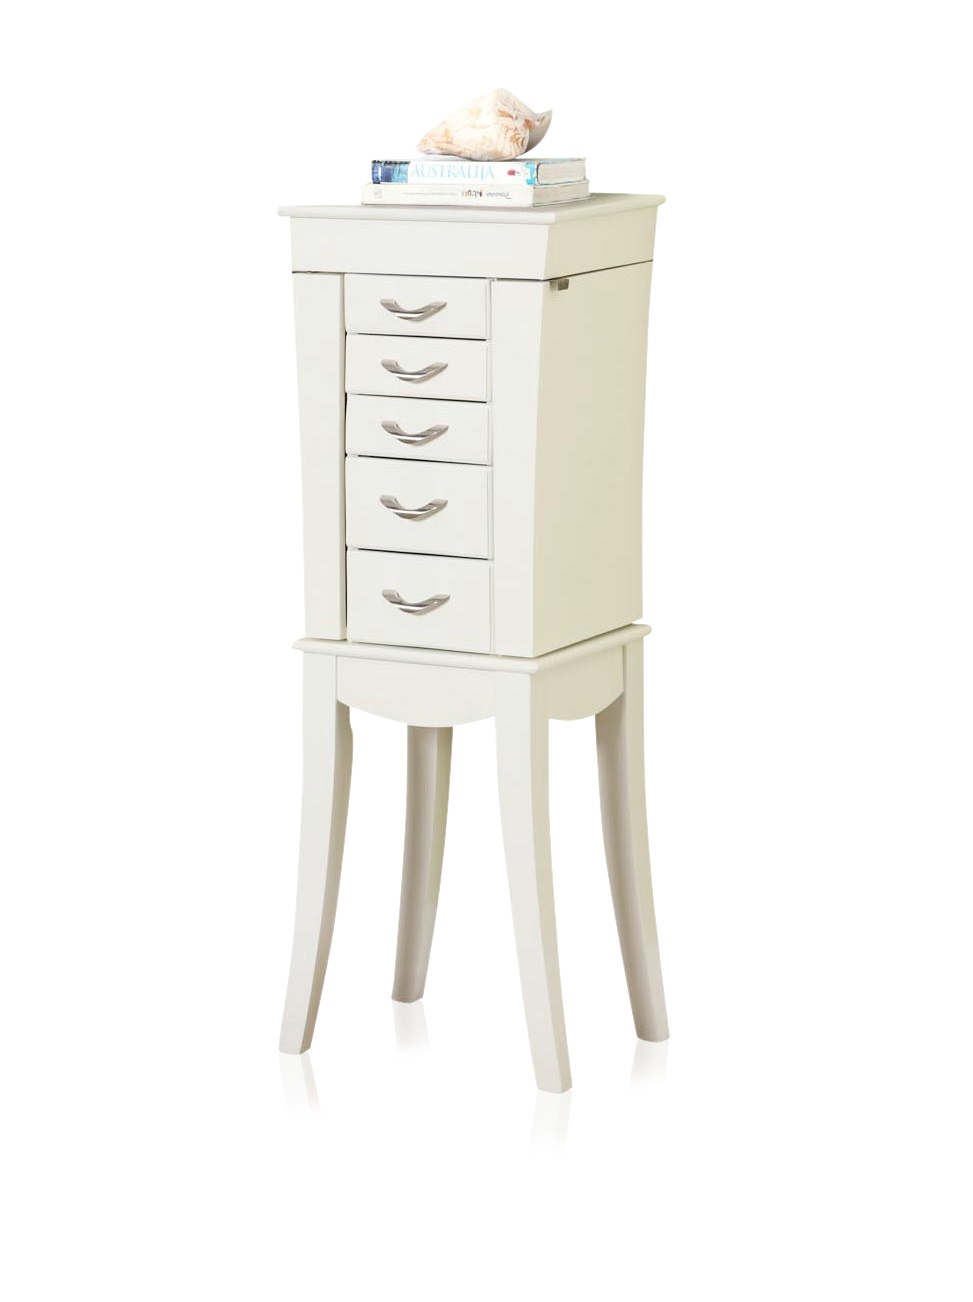 Nathan Direct Eiffel Tower 5 Drawer Jewelry Armoire with 2 Side Compartments and a Lift-Top Compartment with Mirror and Ring Holders, White